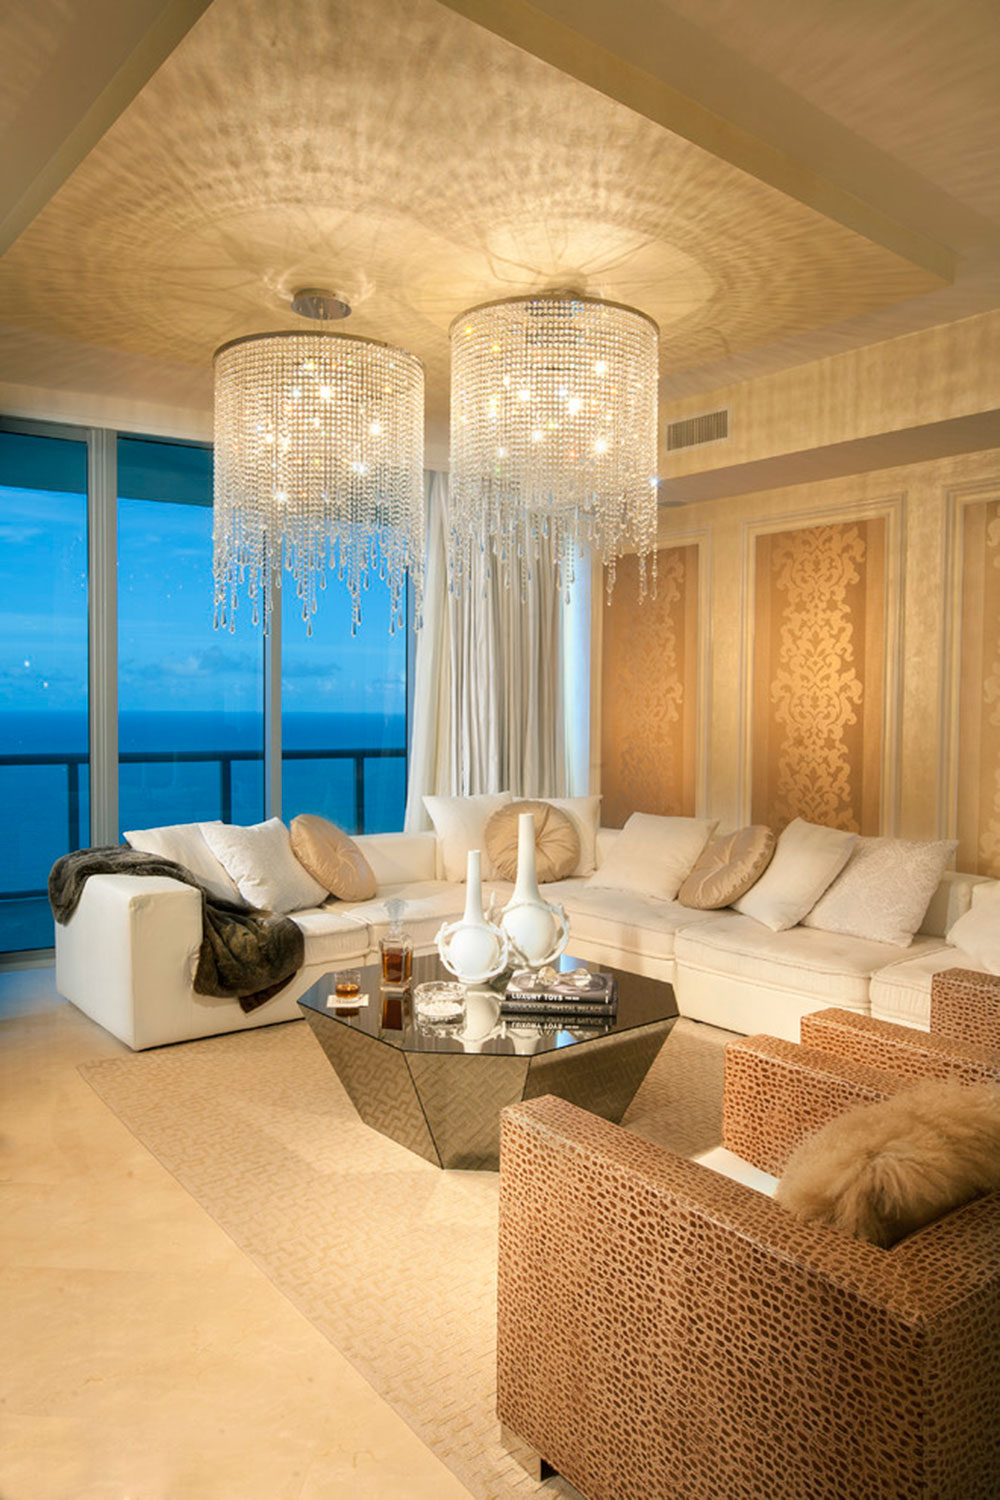 Beautiful chandelier designs 68 modern examples a collection of really beautiful chandelier designs1 beautiful chandelier designs arubaitofo Gallery